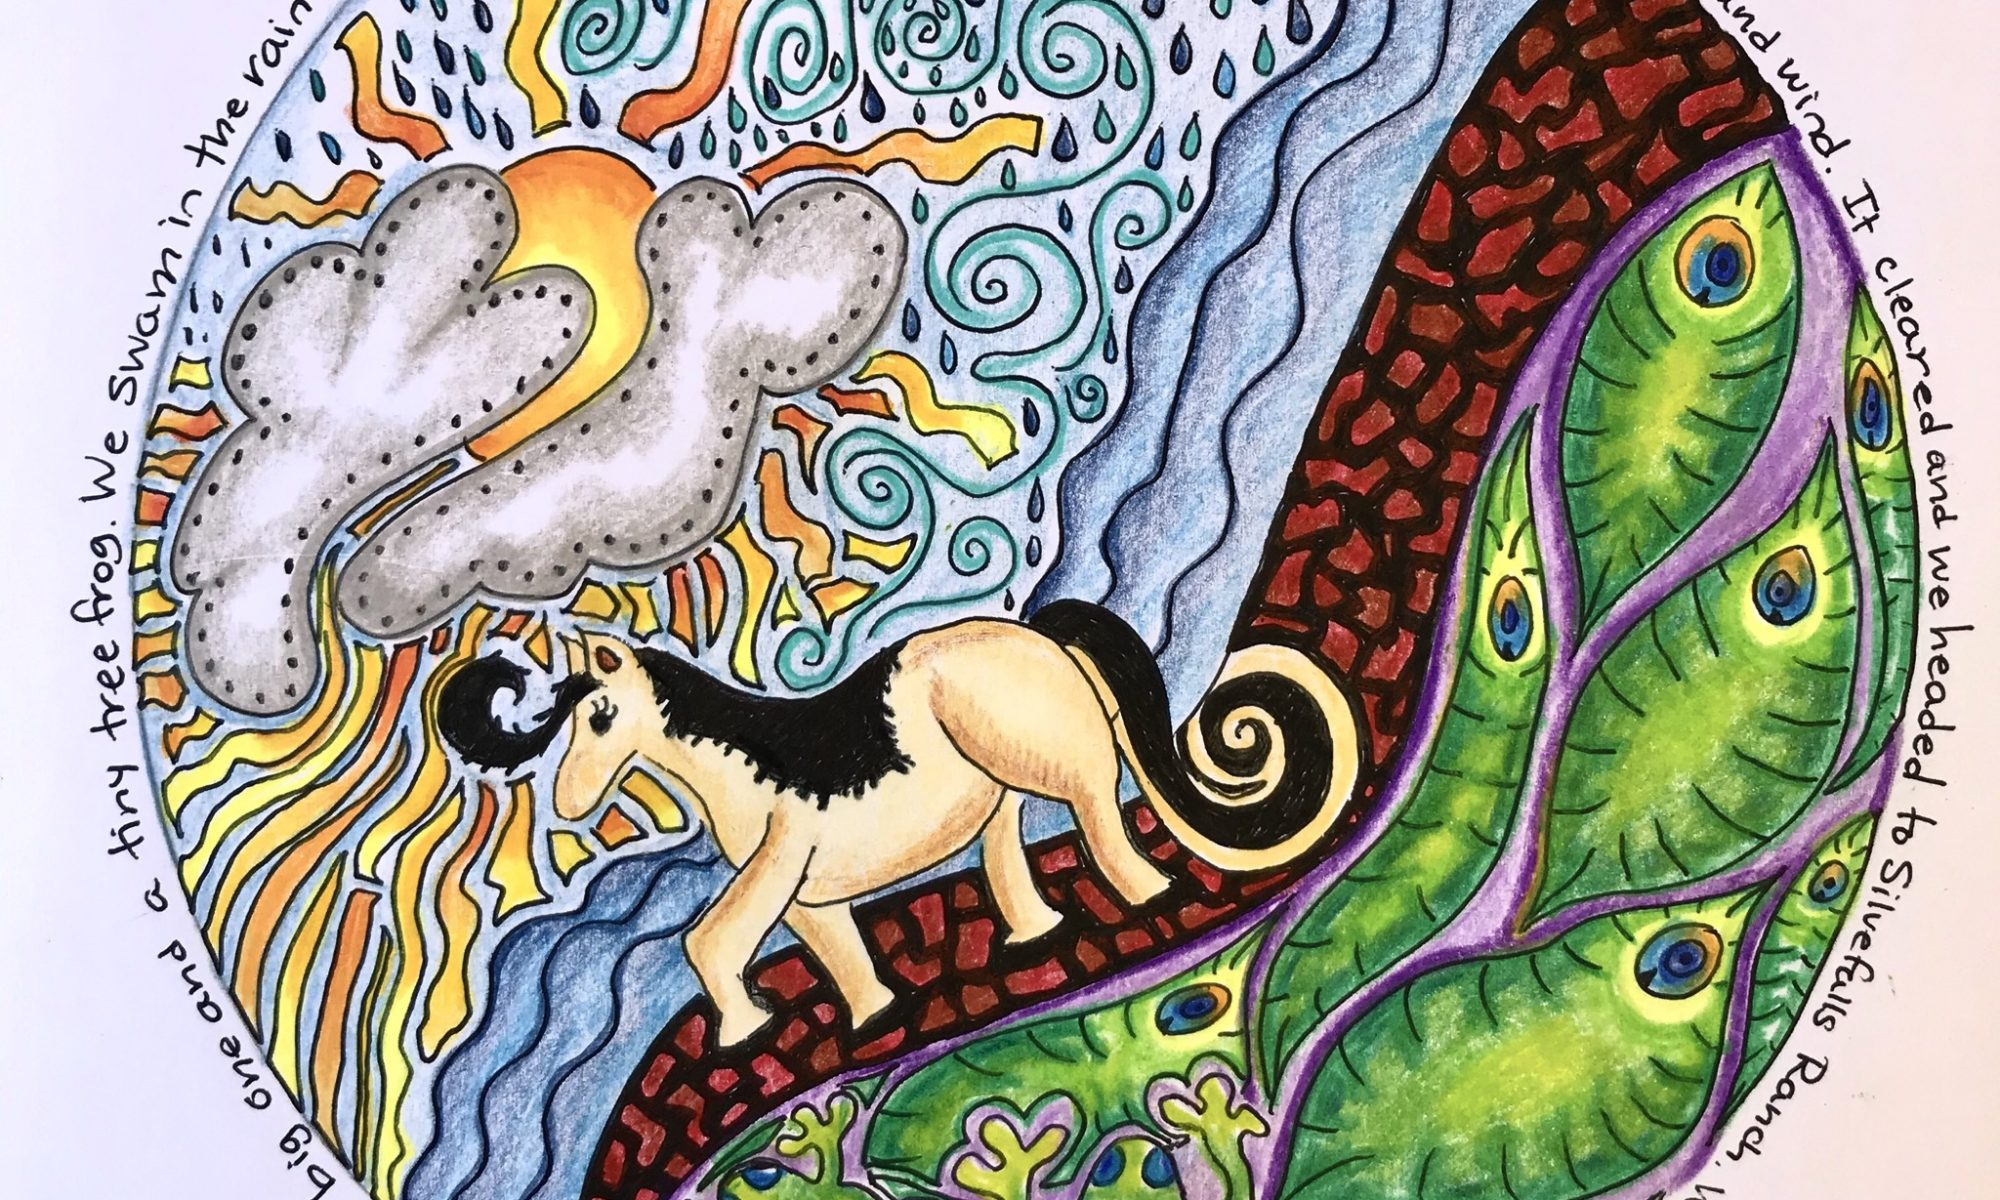 Original mandala drawing of a horse riding trip in Hawaii. A horse walks along a dirt path with sun and ocean in the background. Original artwork by Anna Loscotoff.